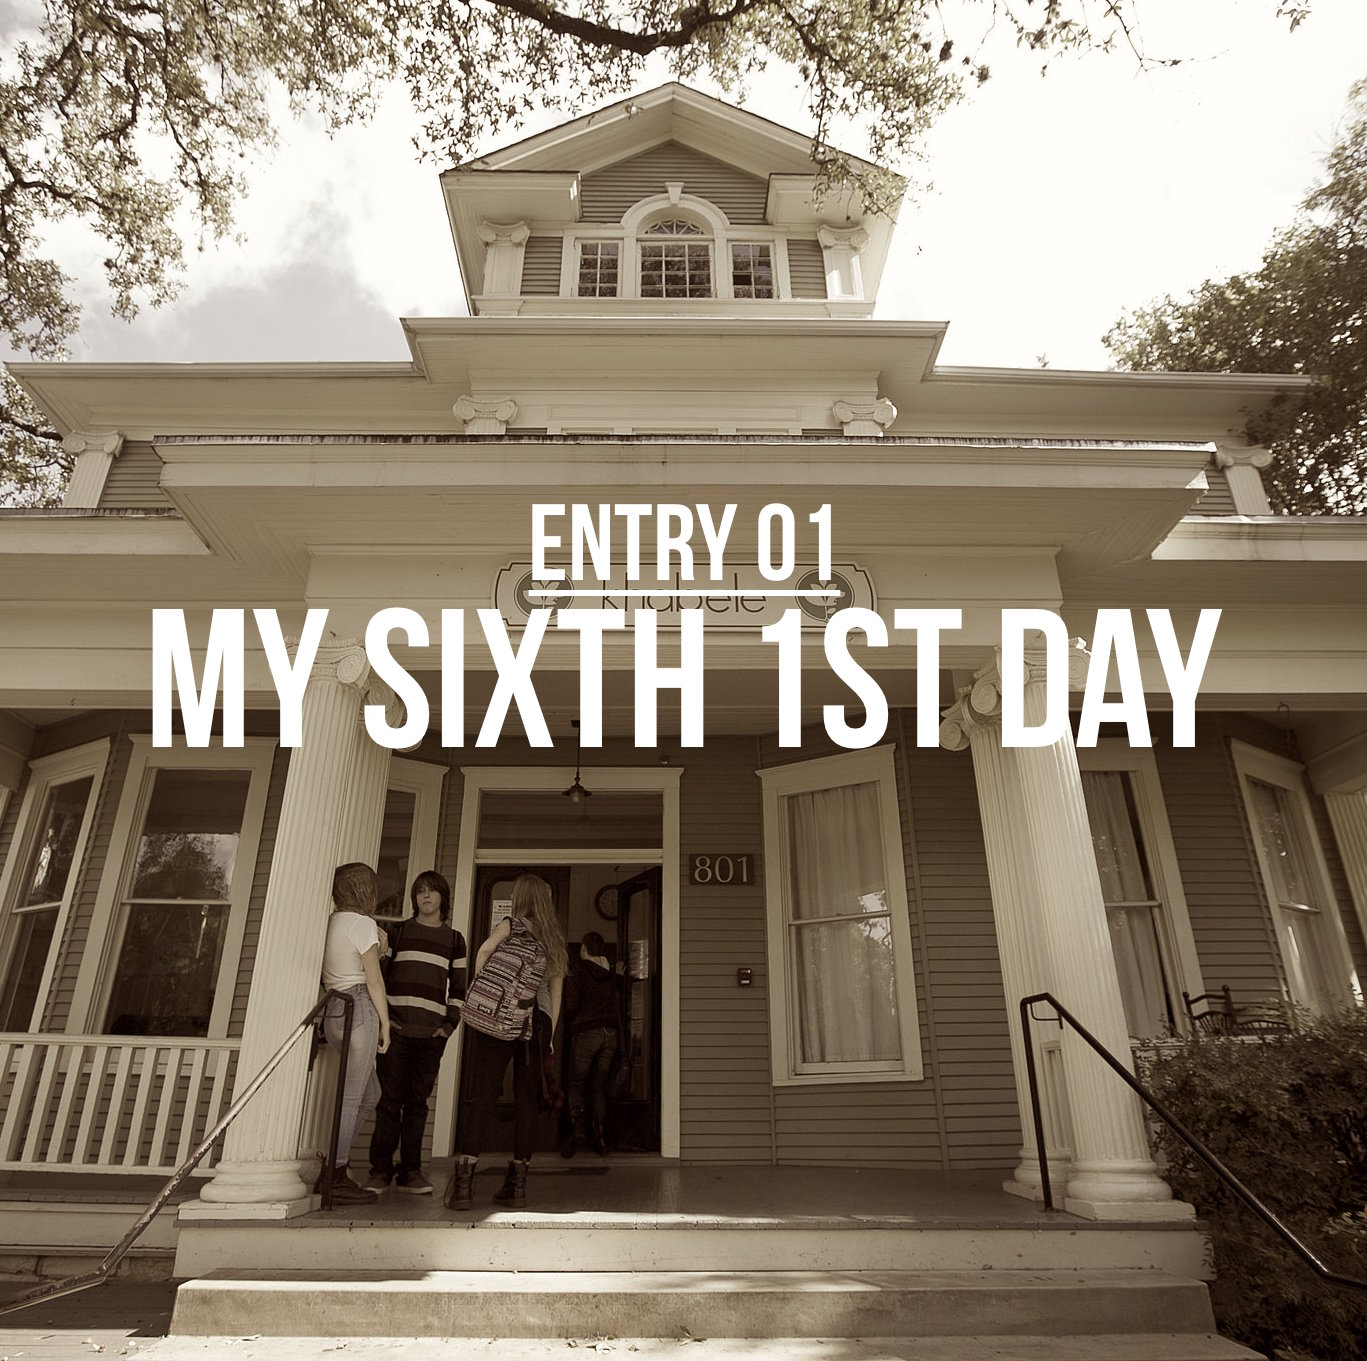 Entry 1 – My Sixth First Day